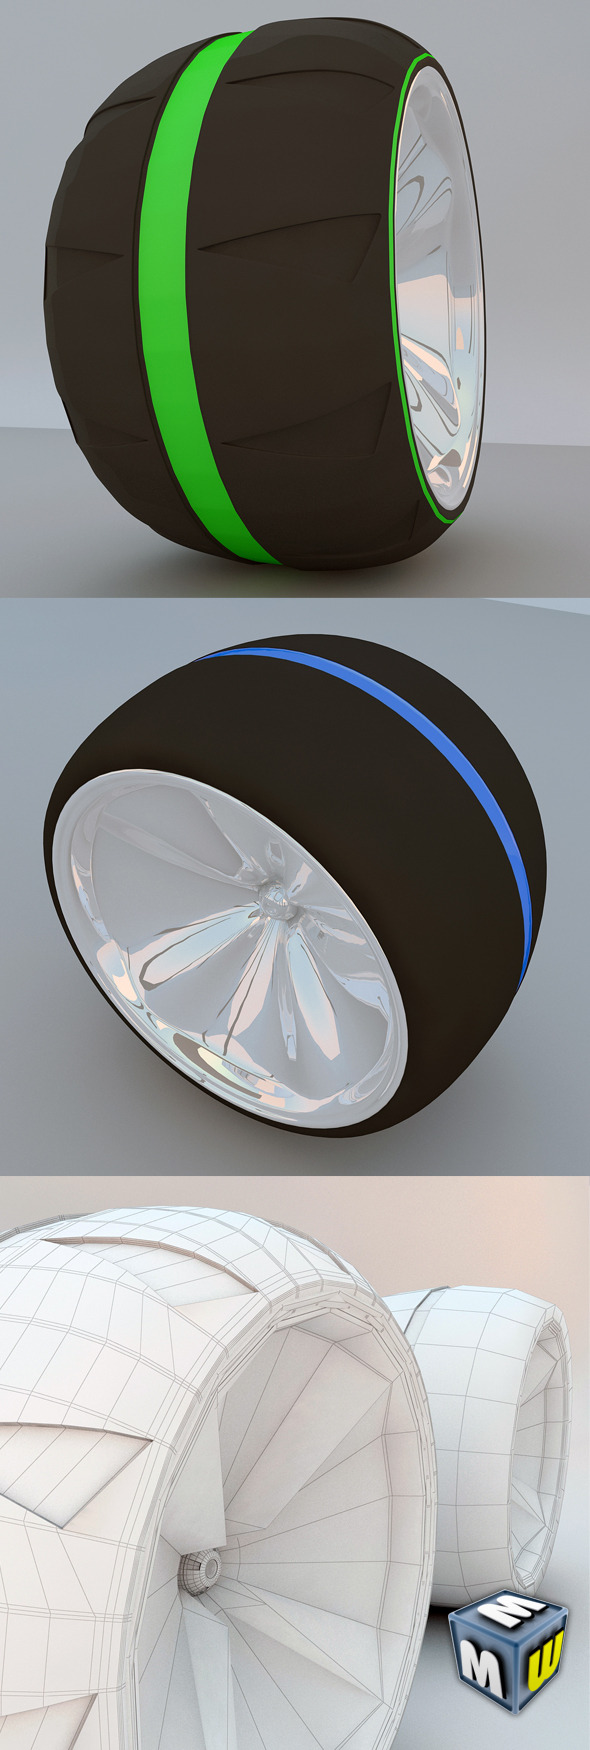 Futuristic Wheel Concept MAX 2011 - 3DOcean Item for Sale